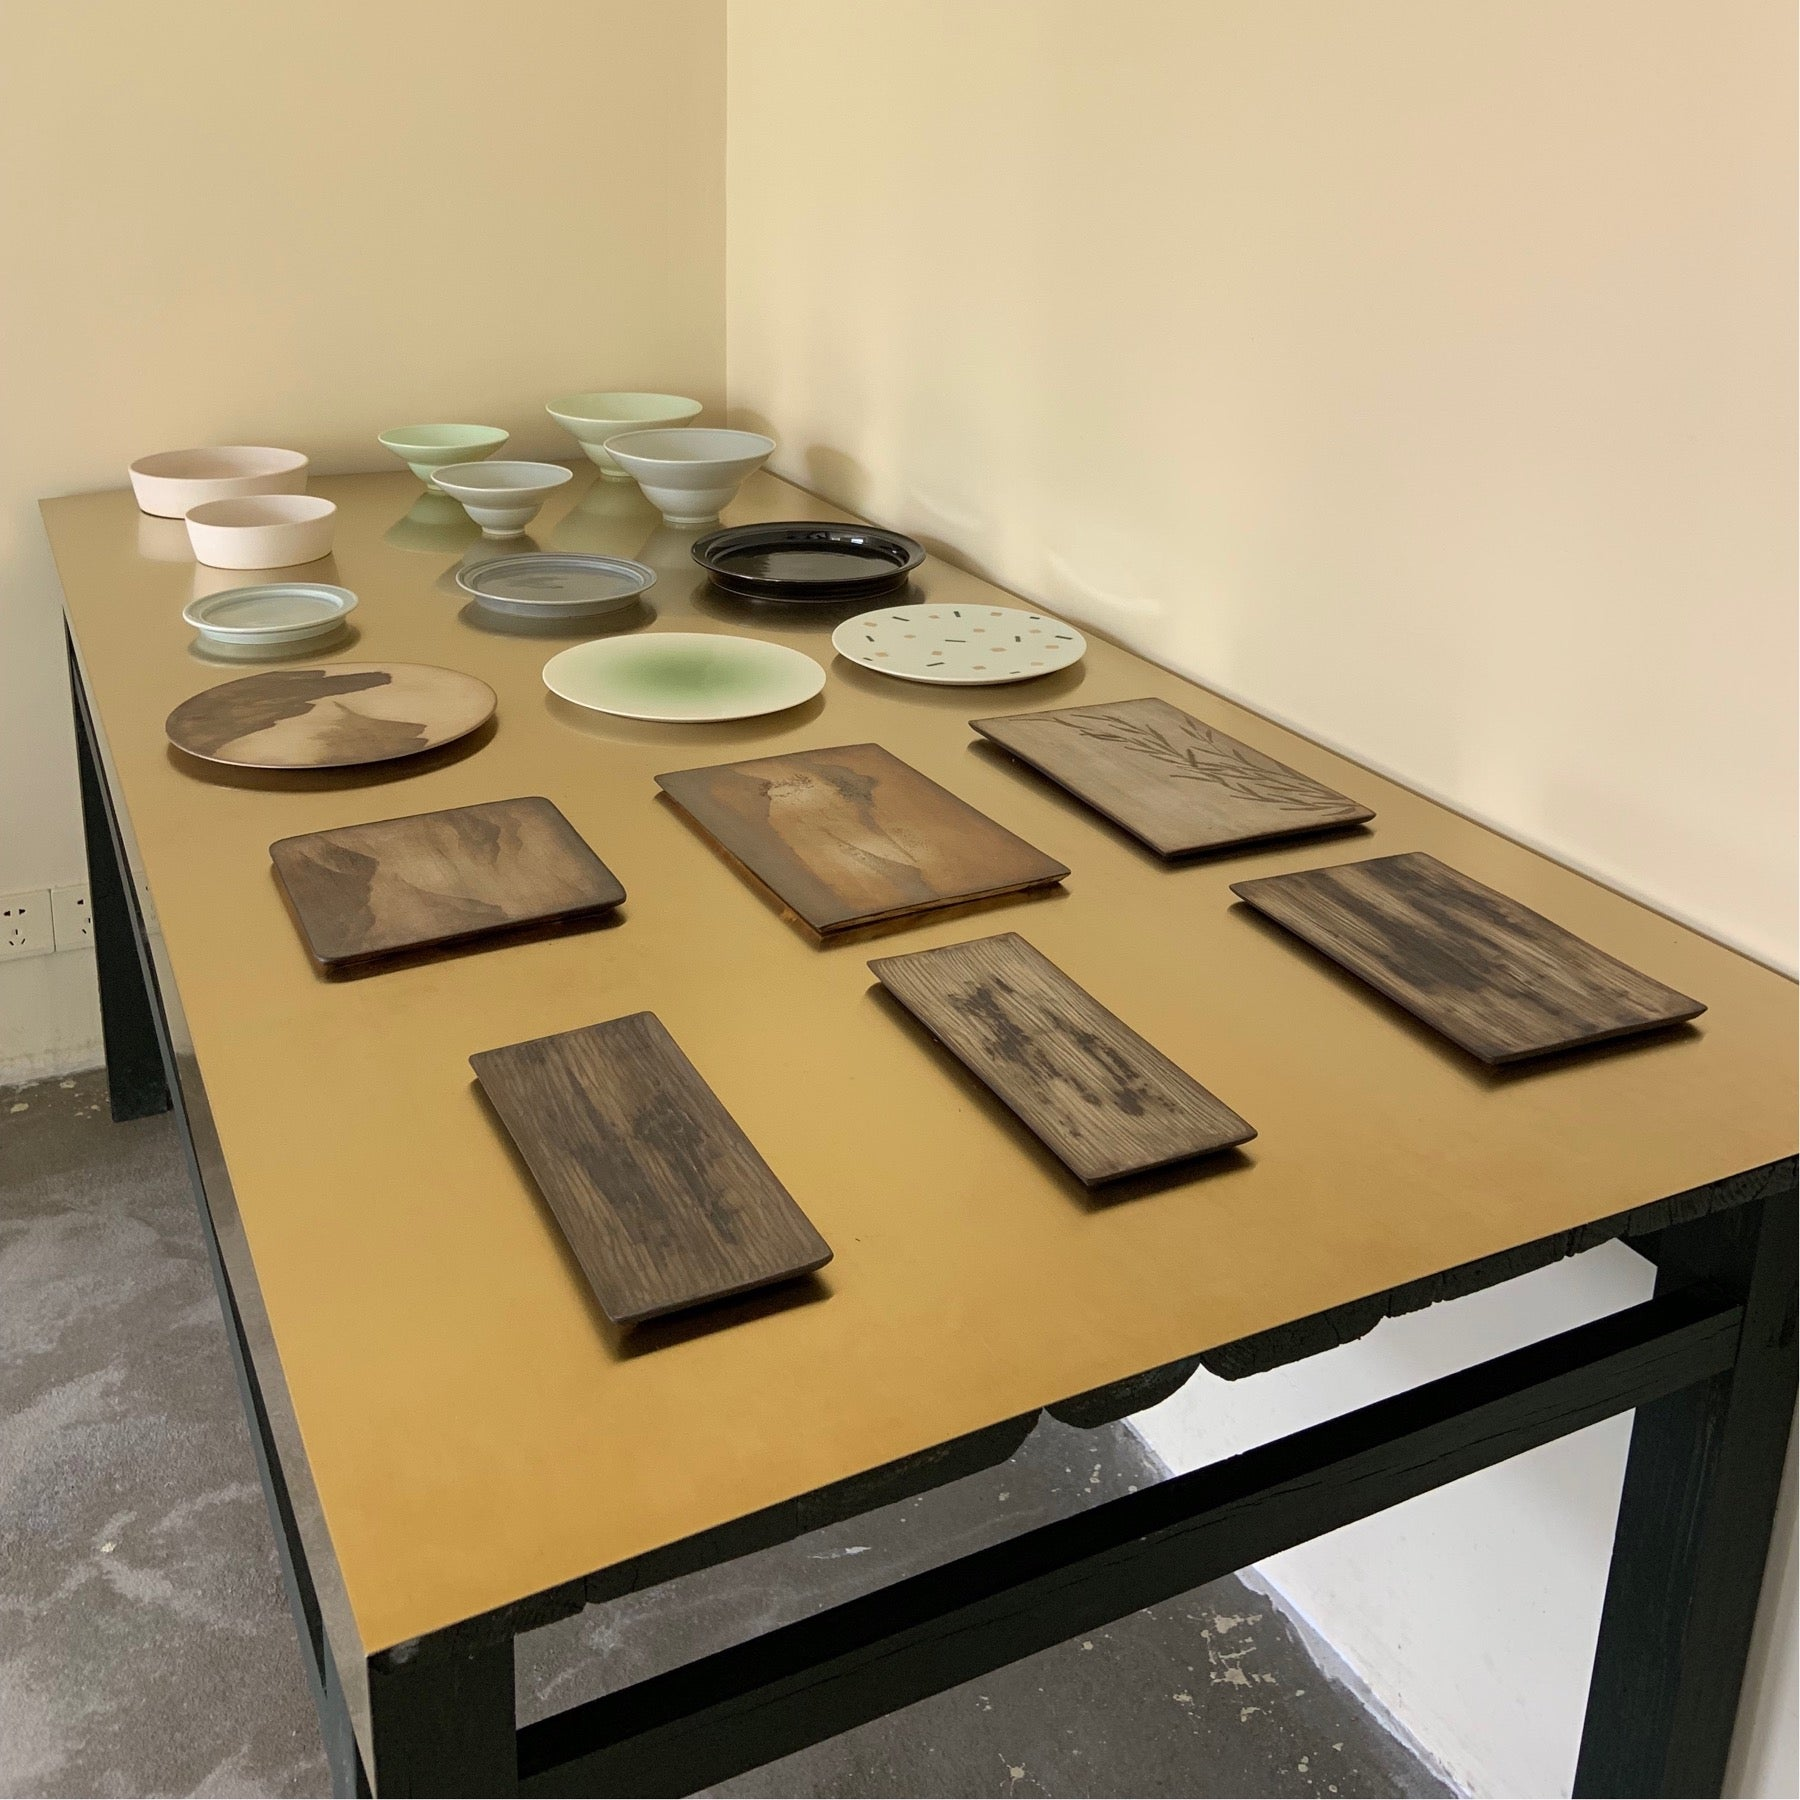 collection of tea trays teatrays from Jingdezhen